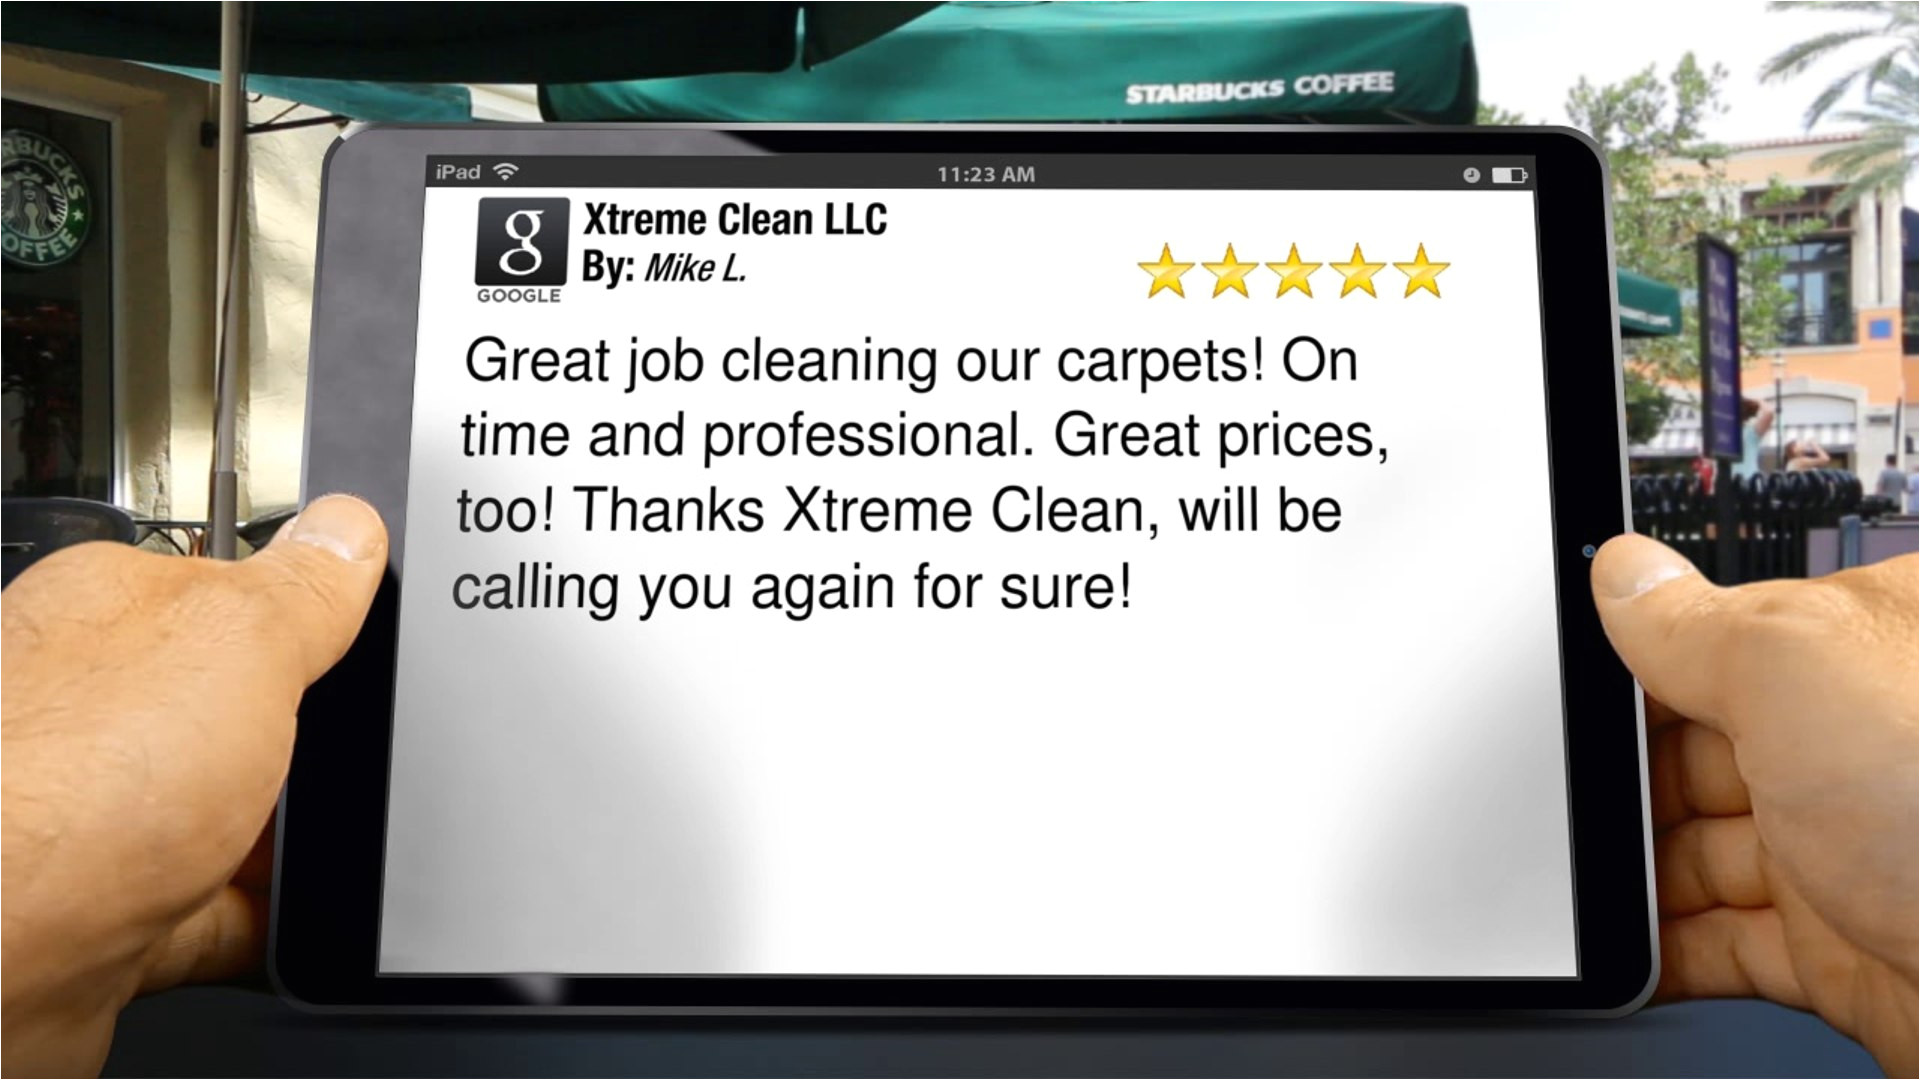 xtreme clean llc albuquerquecarpet cleaning companyreceivesimpressive 5 star review by mike l video dailymotion